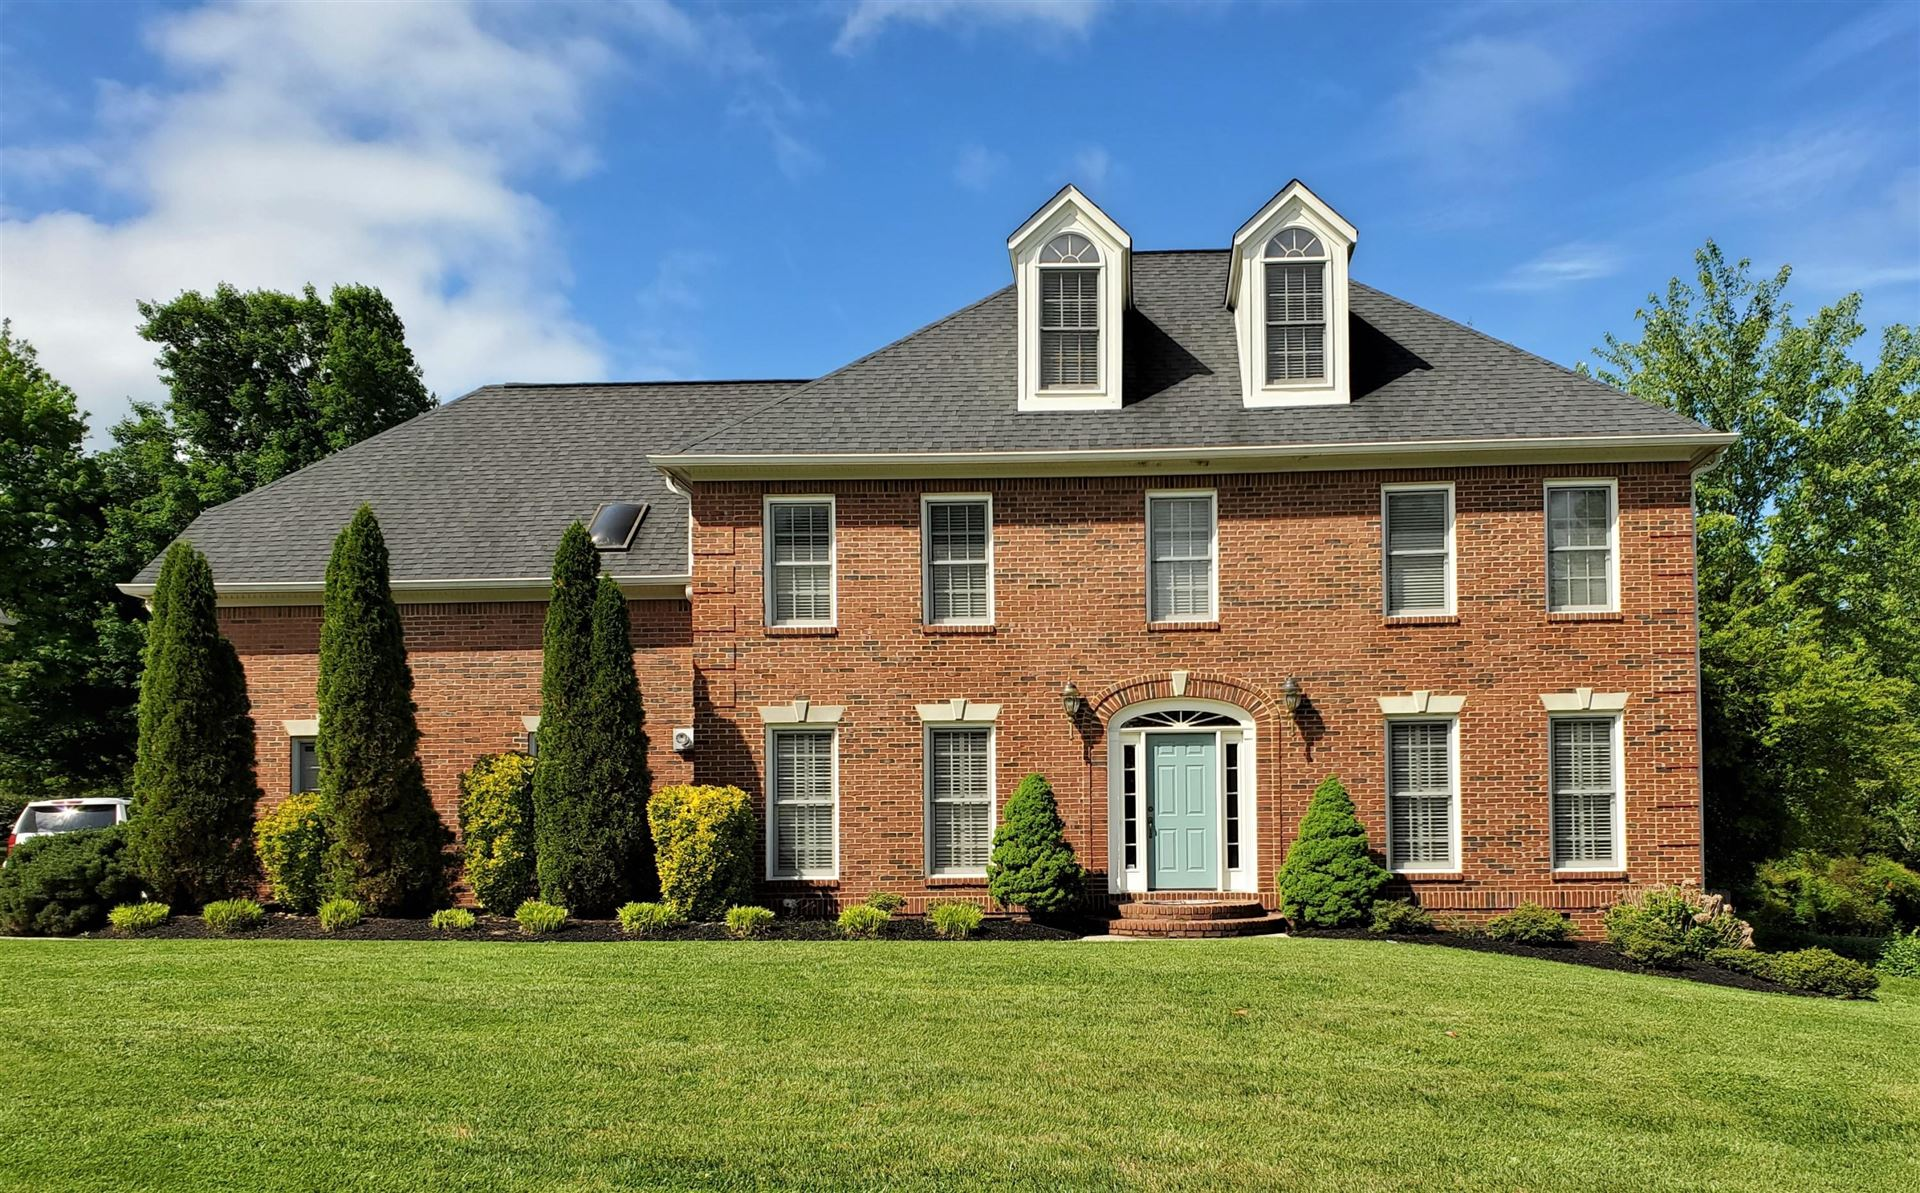 Photo of 217 Battery Hill Circle, Knoxville, TN 37934 (MLS # 1122125)